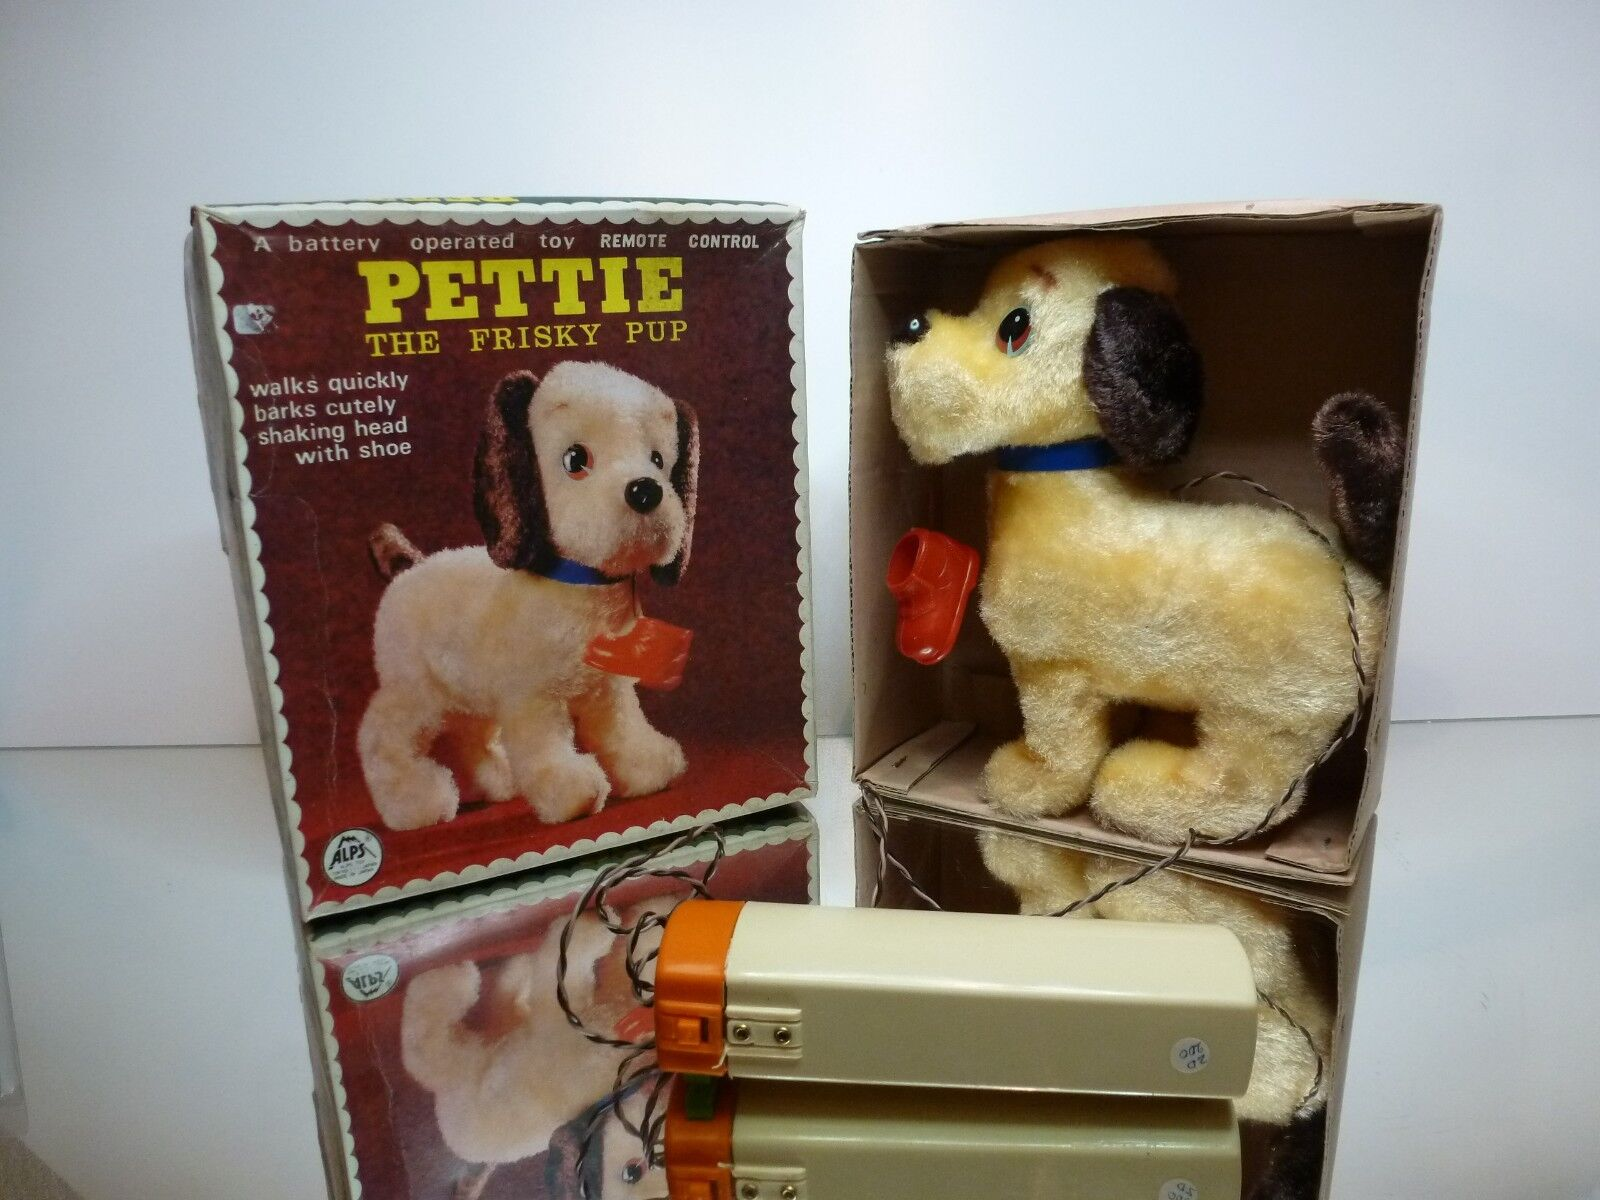 ALPS TOY JAPAN 5756 PETTIE THE FRISKY PUP PUP PUP - RC - CREAM H21.0cm - GOOD IN BOX 1774ea